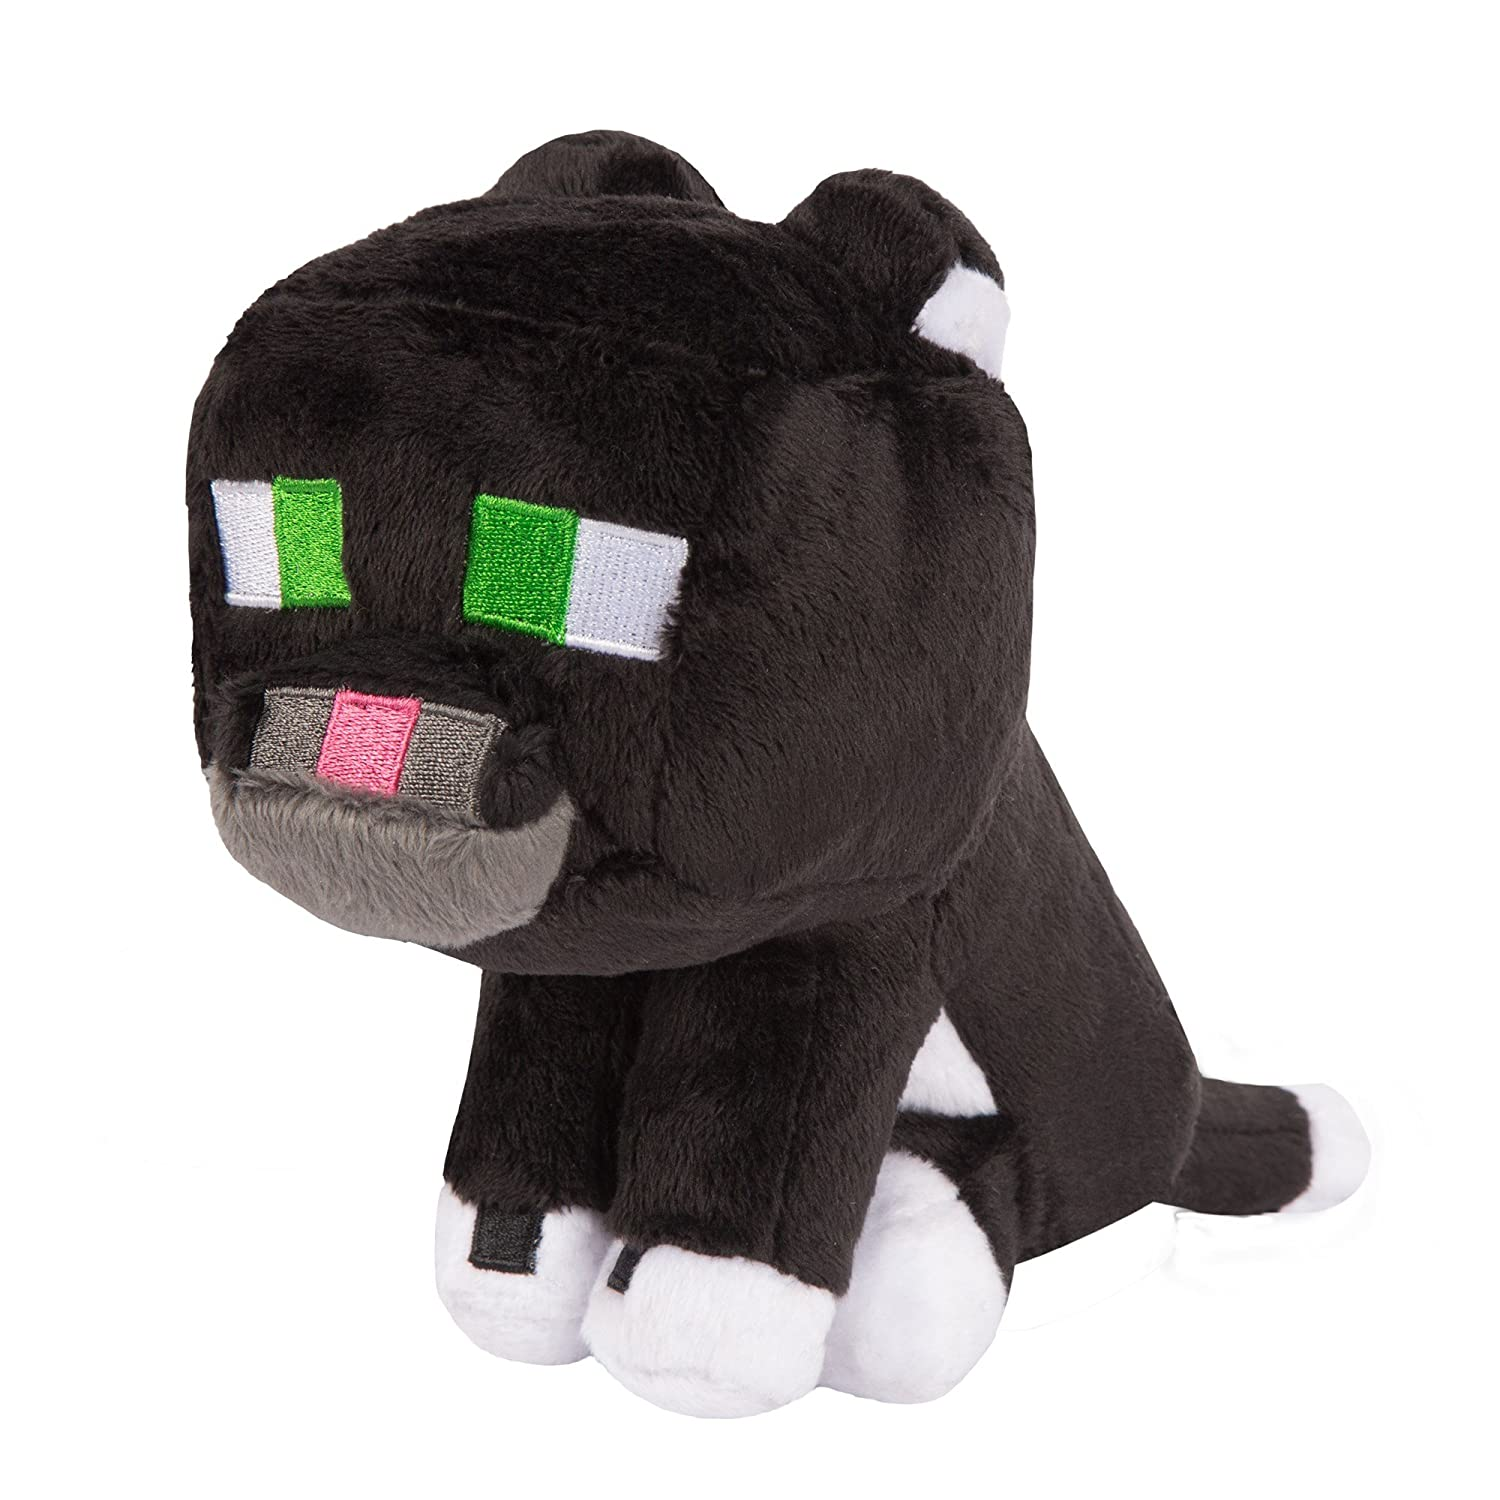 JINX Minecraft Tuxedo Cat Plush Stuffed Toy (Multi-Color, 8 Tall) 8 Tall) 6363